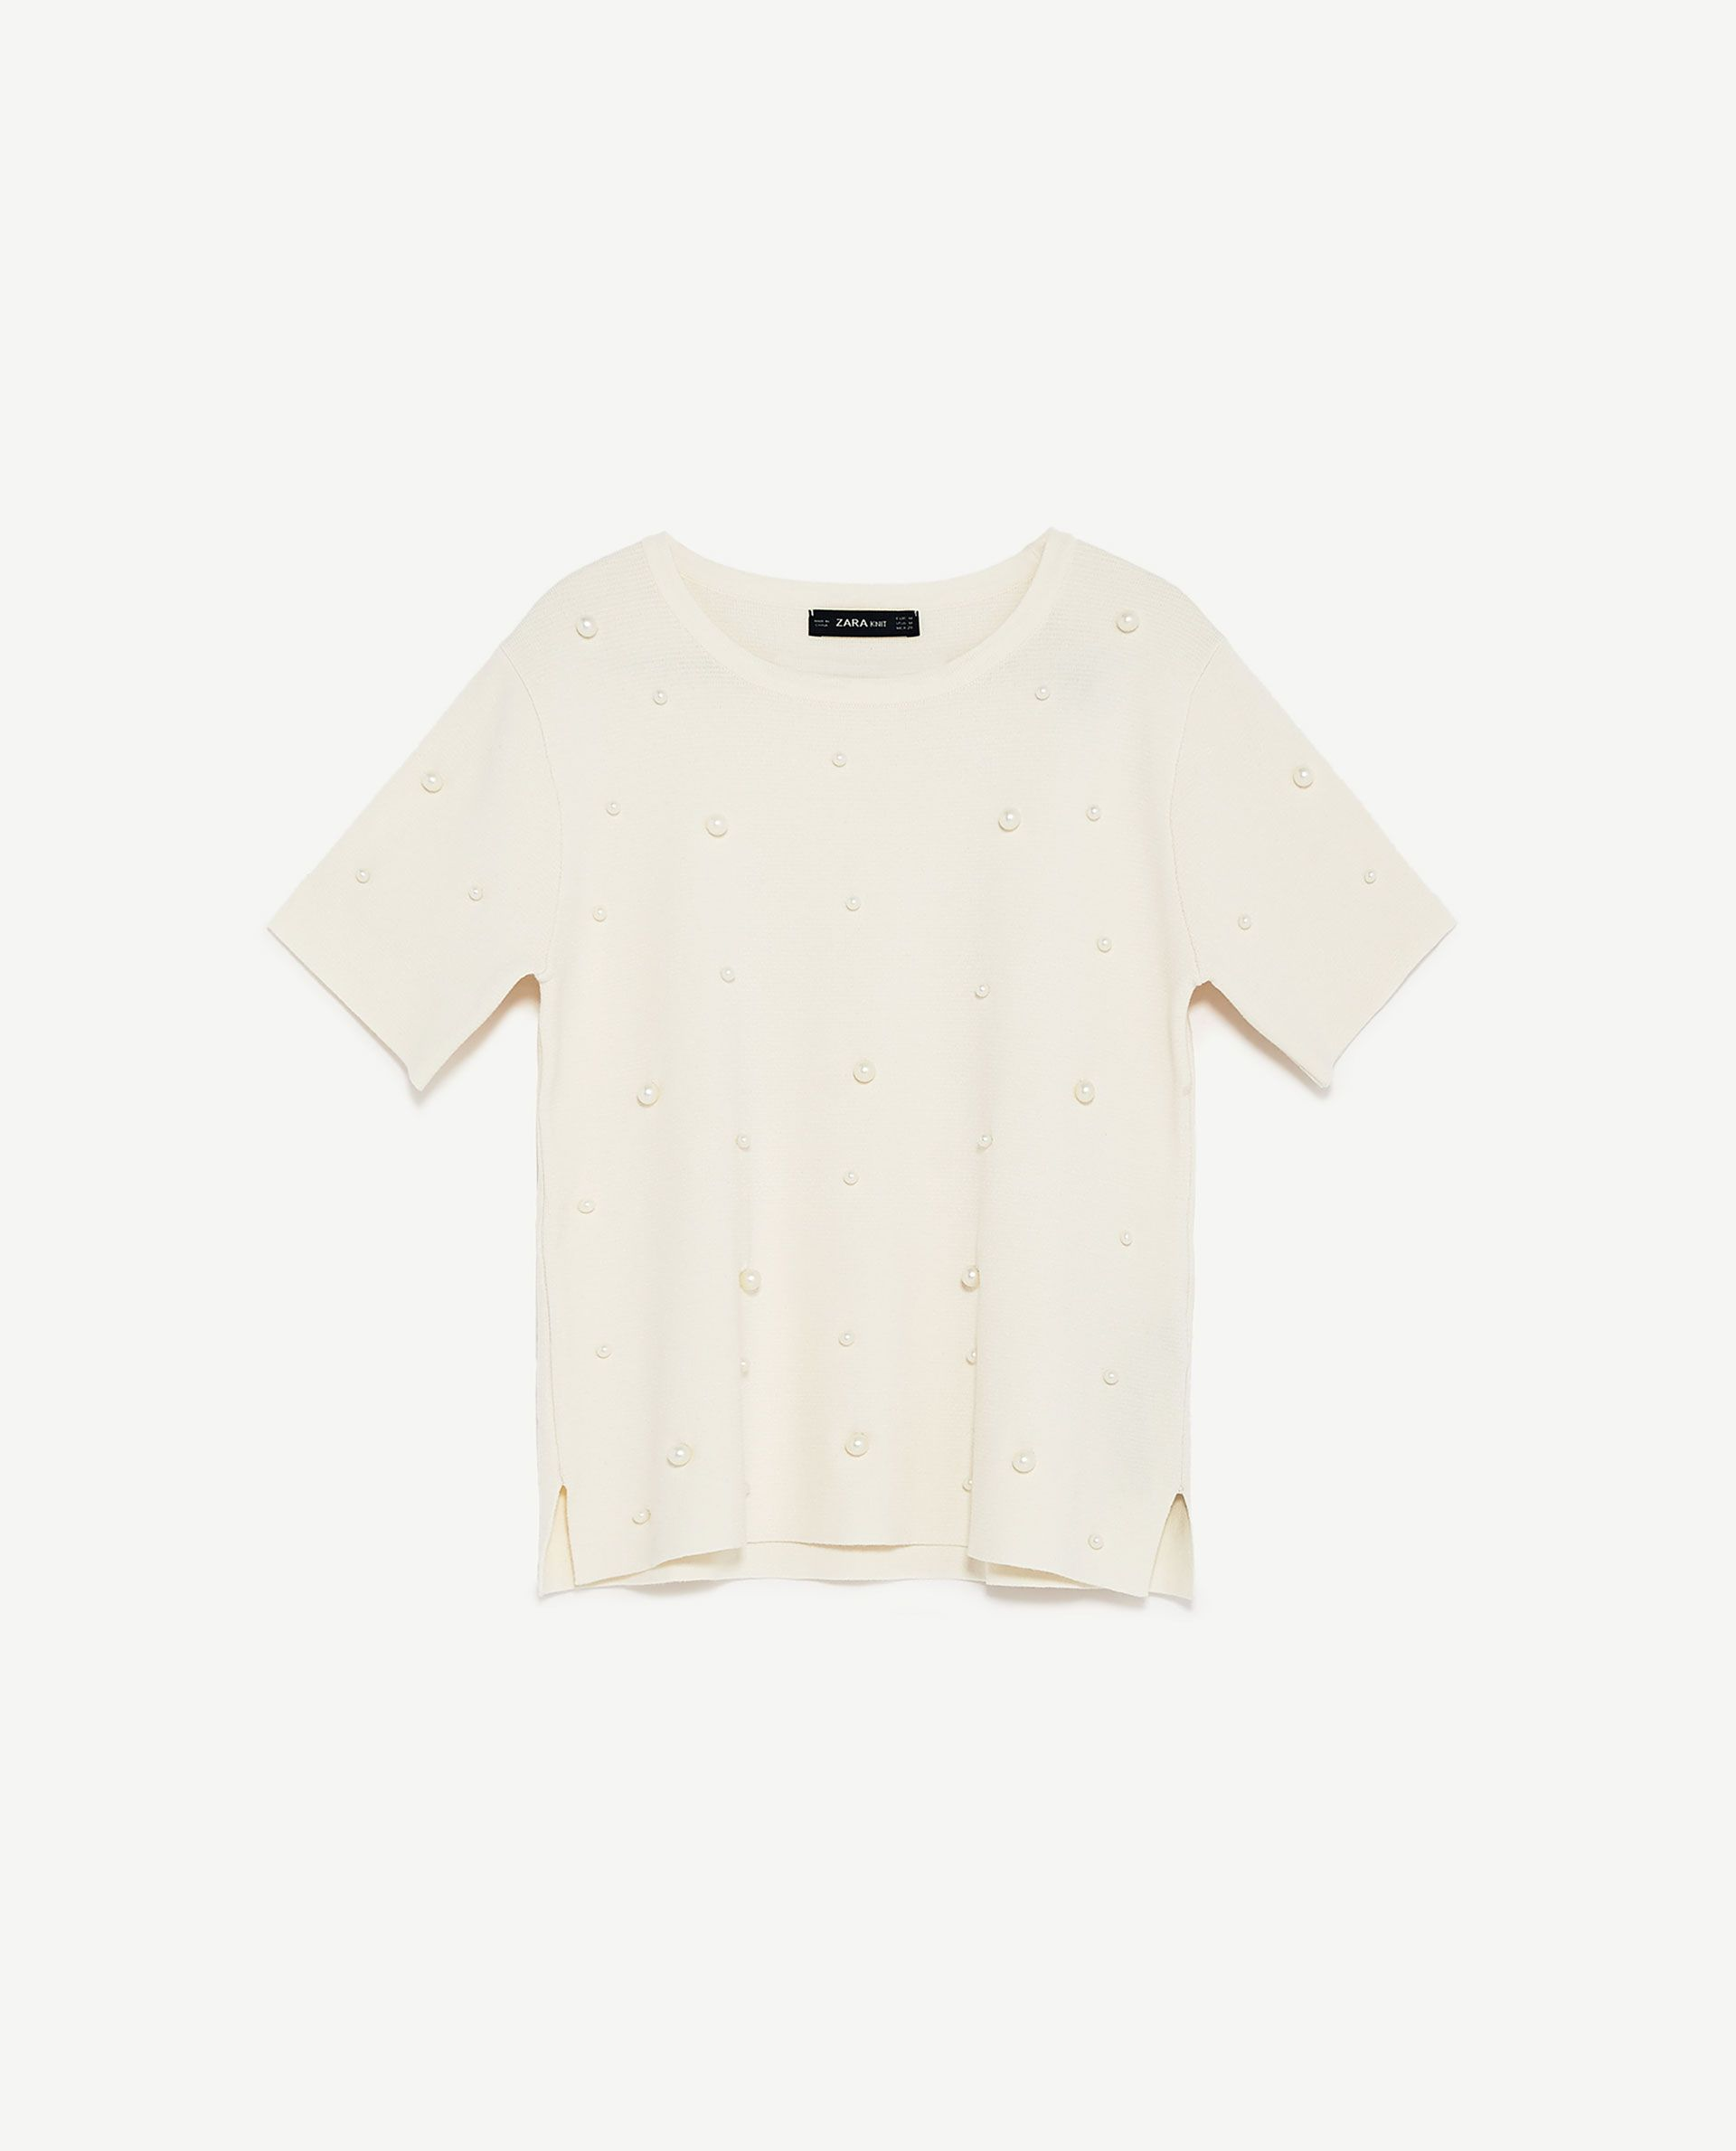 Zara S New Collection Is Major Shop Our Edit Now White Short Sleeve Jumper With Pearl Embelishment From Instyle Com Tops Knitwear Sale Womens Tops